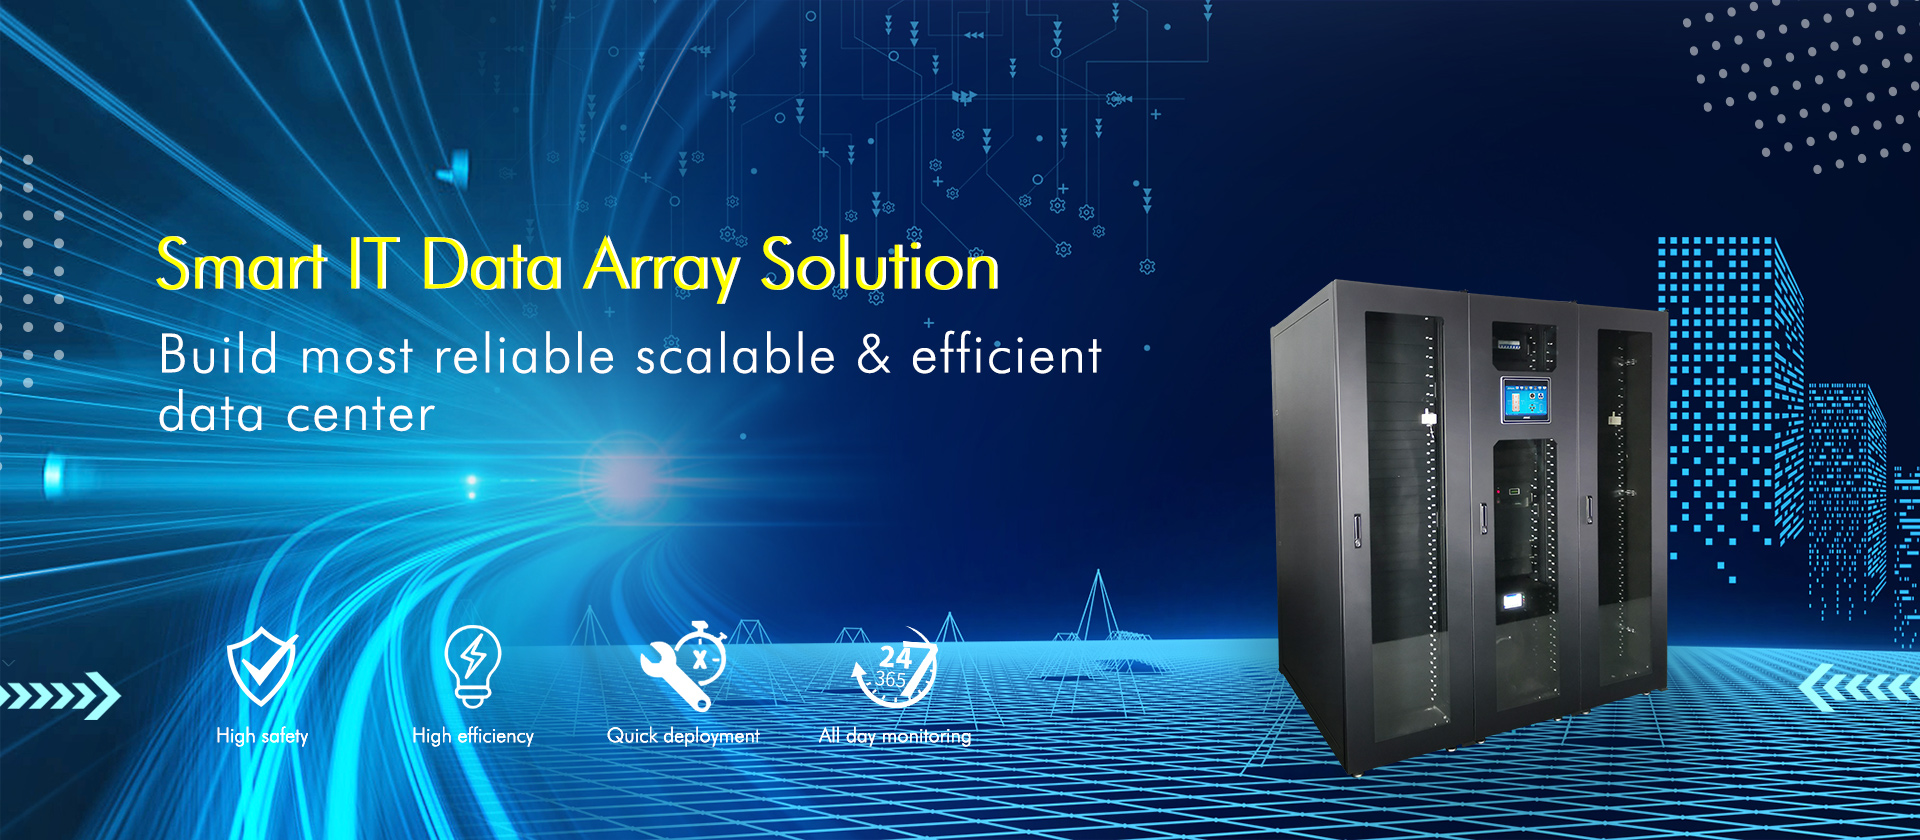 Smart IT Data Array Solution